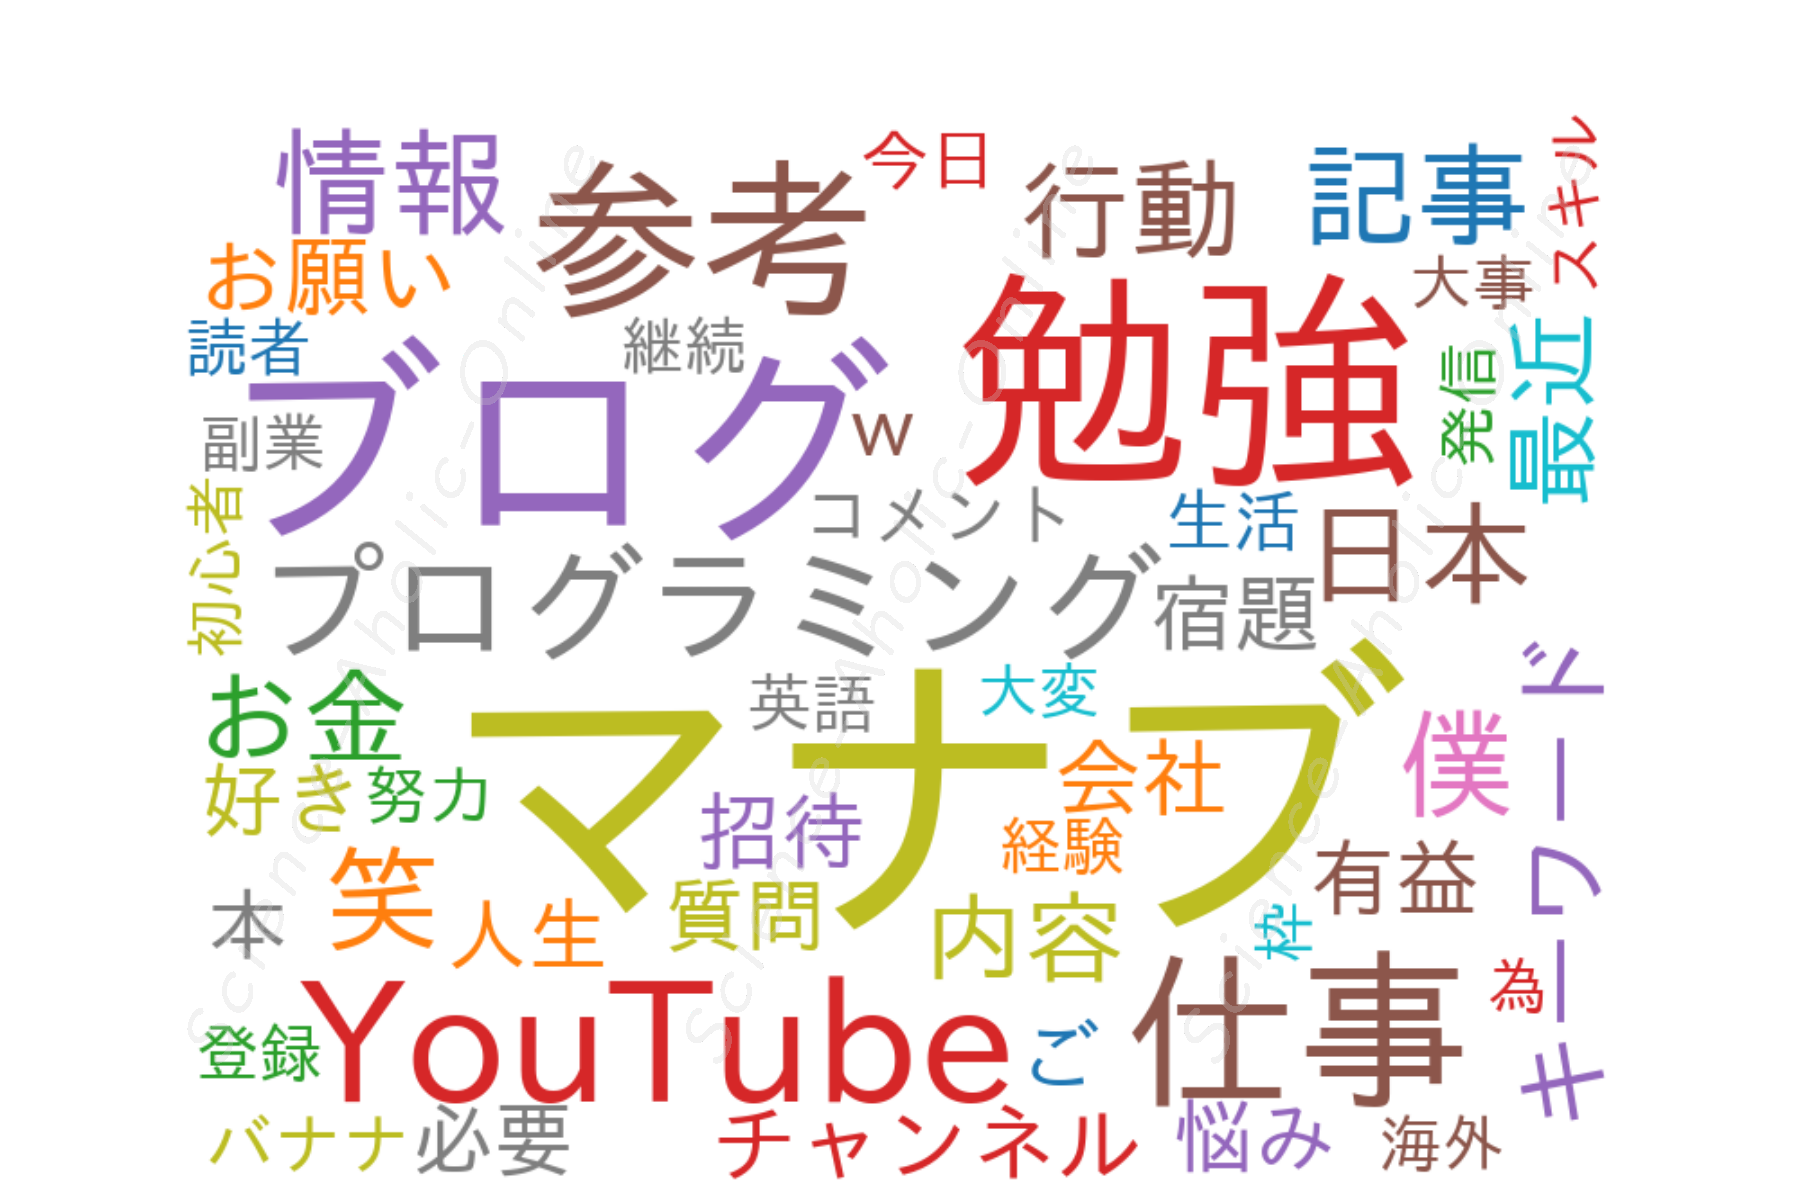 https://science-aholic-online.com/wp-content/uploads/2020/08/wordcloud_マナブ.png